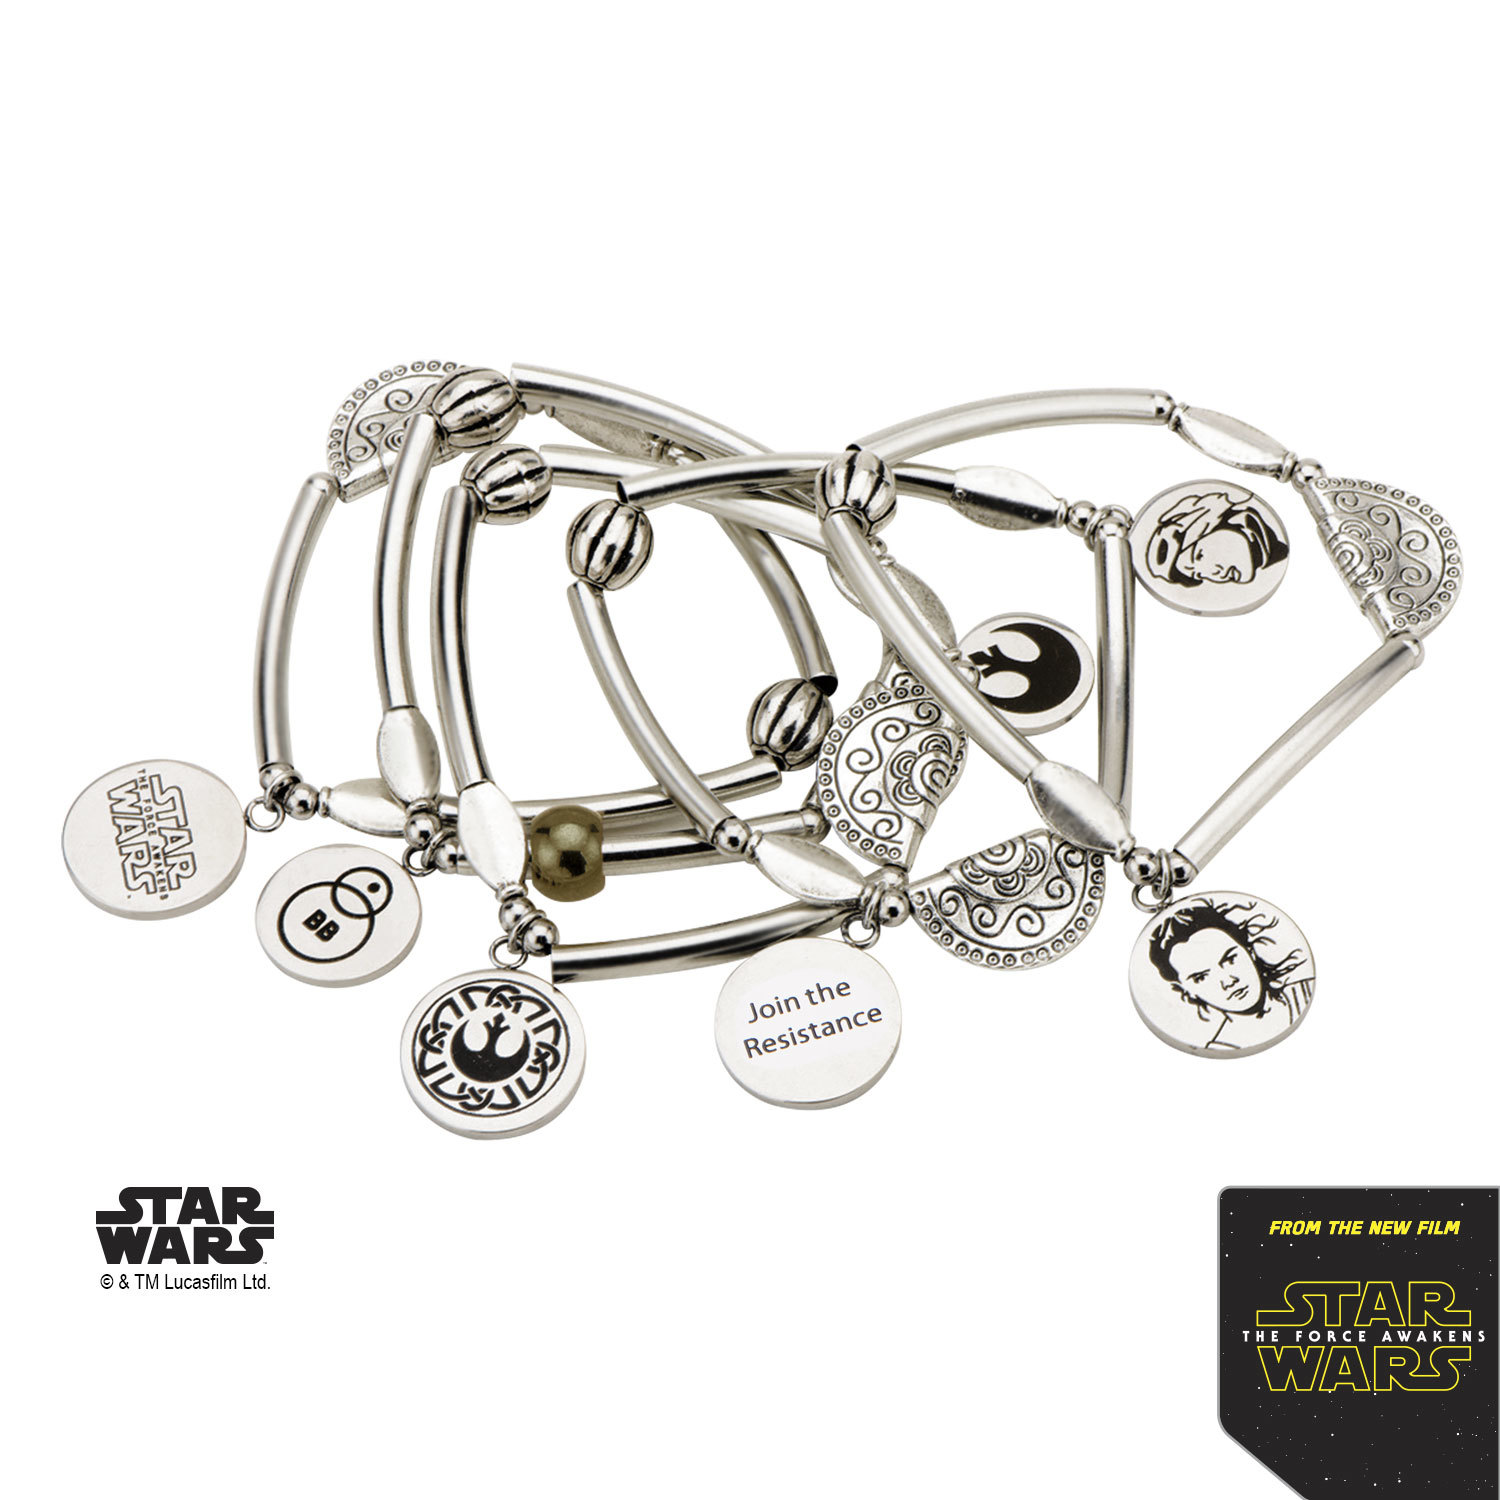 Star Wars Stainless Steel Rey Stretchable Bracelet image